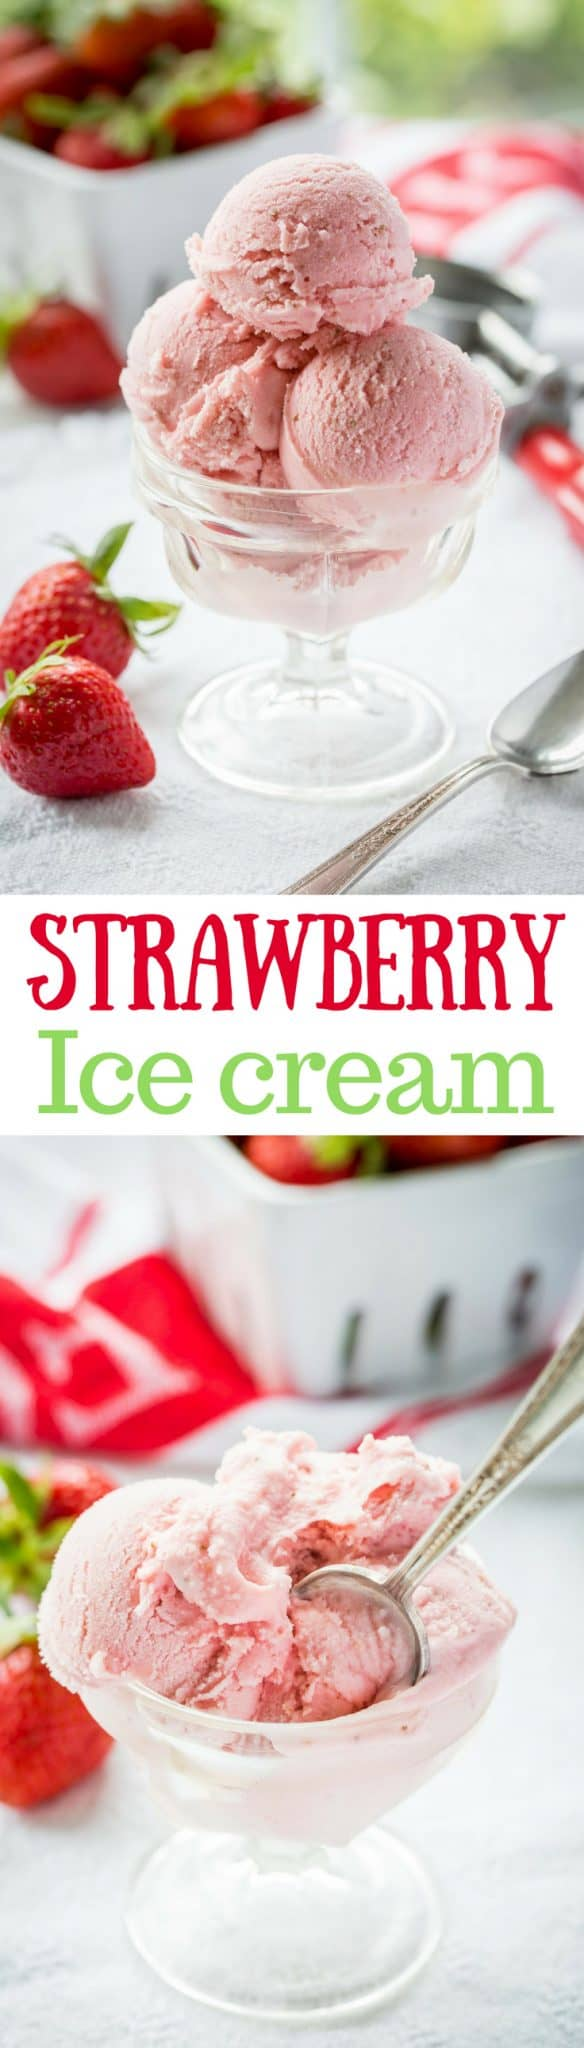 Fresh Strawberry Ice Cream ~ creamy and smooth, with tart (not sour) undertones that you'd expect from a good ripe strawberry. With a touch of Grand Marnier, buttermilk and mascarpone cheese, the richness shines through in this eggless, dreamy, frozen treat! www.savingdessert.com